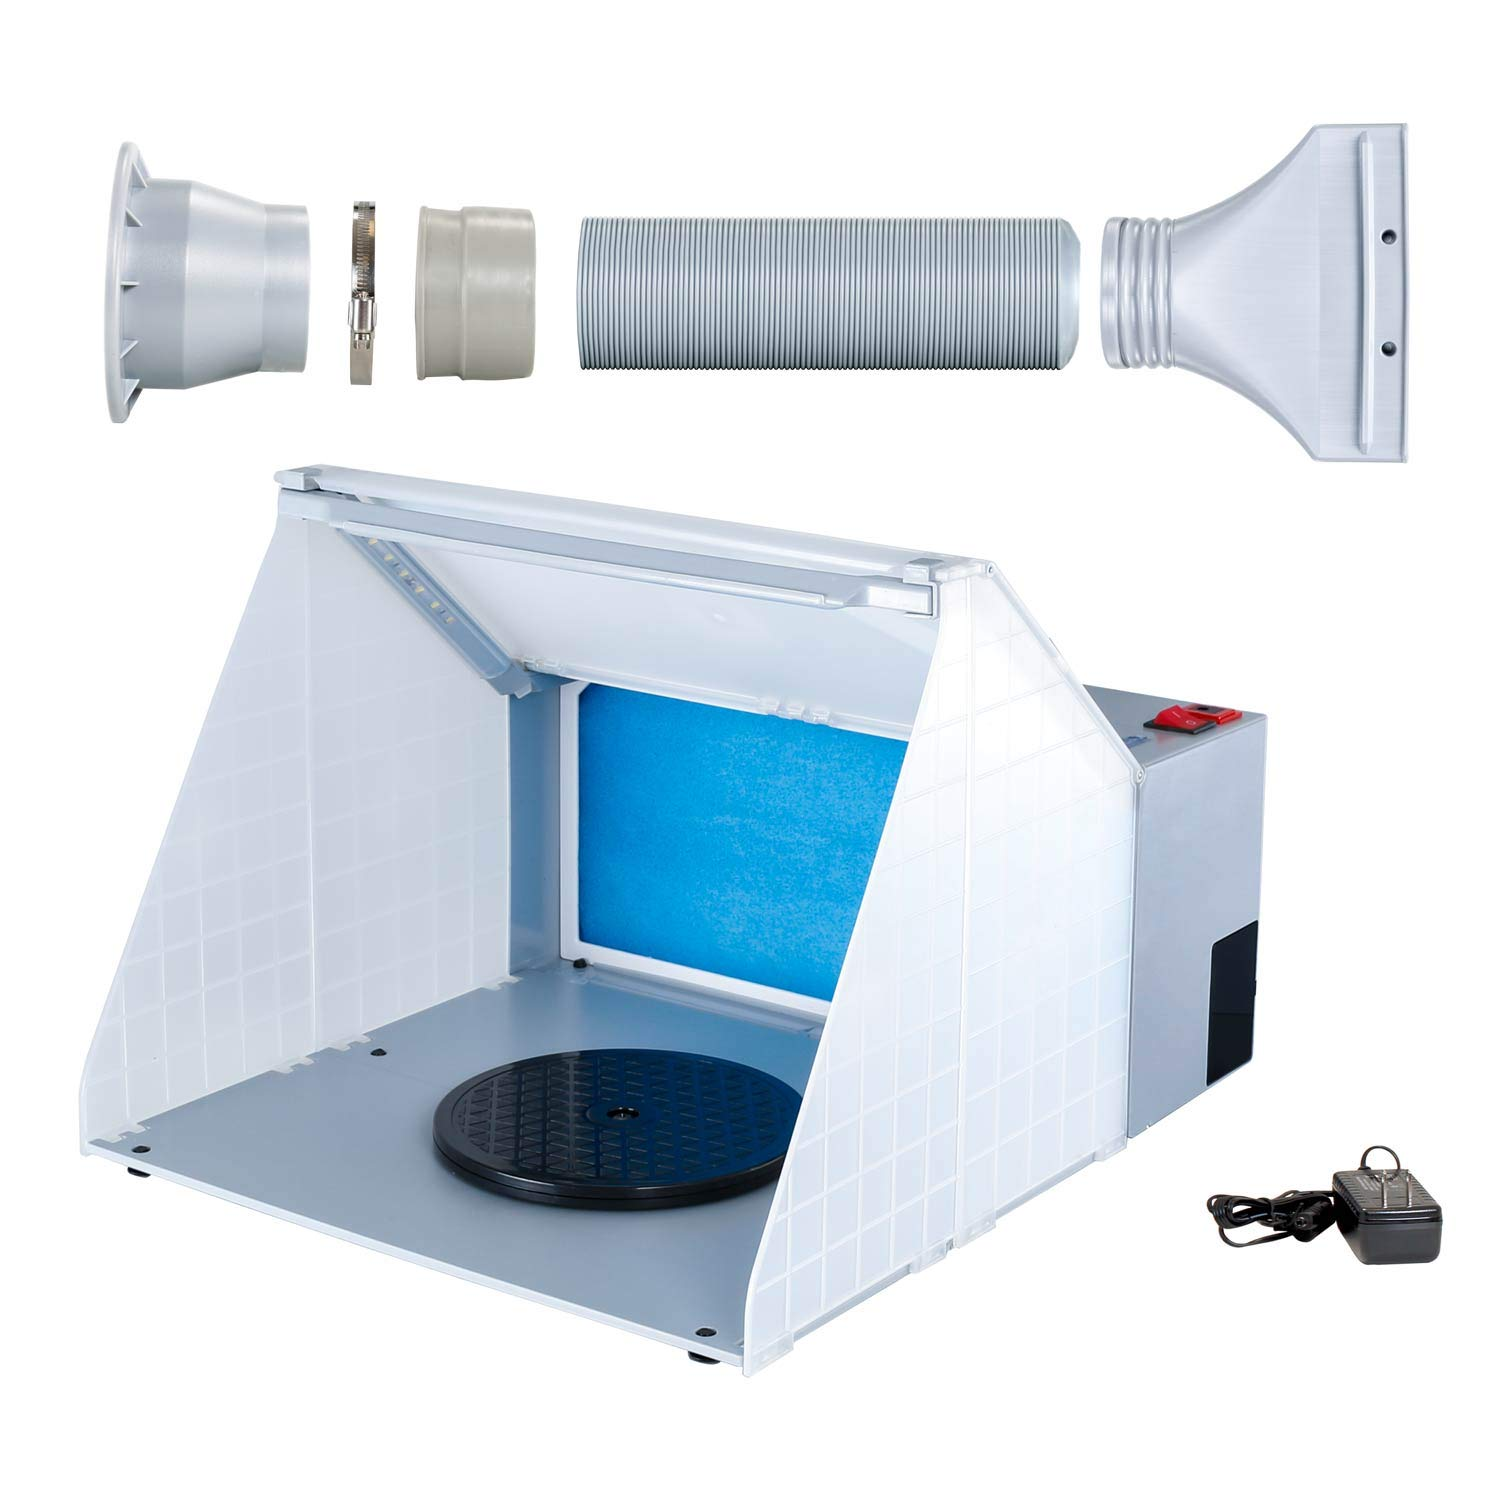 Master Airbrush Brand Lighted Portable Hobby Airbrush Spray Booth with LED Lighting for Painting All Art, Cake, Craft, Hobby, Nails, T-Shirts & More. Includes 6 Foot Exhaust Extension Hose by Master Airbrush